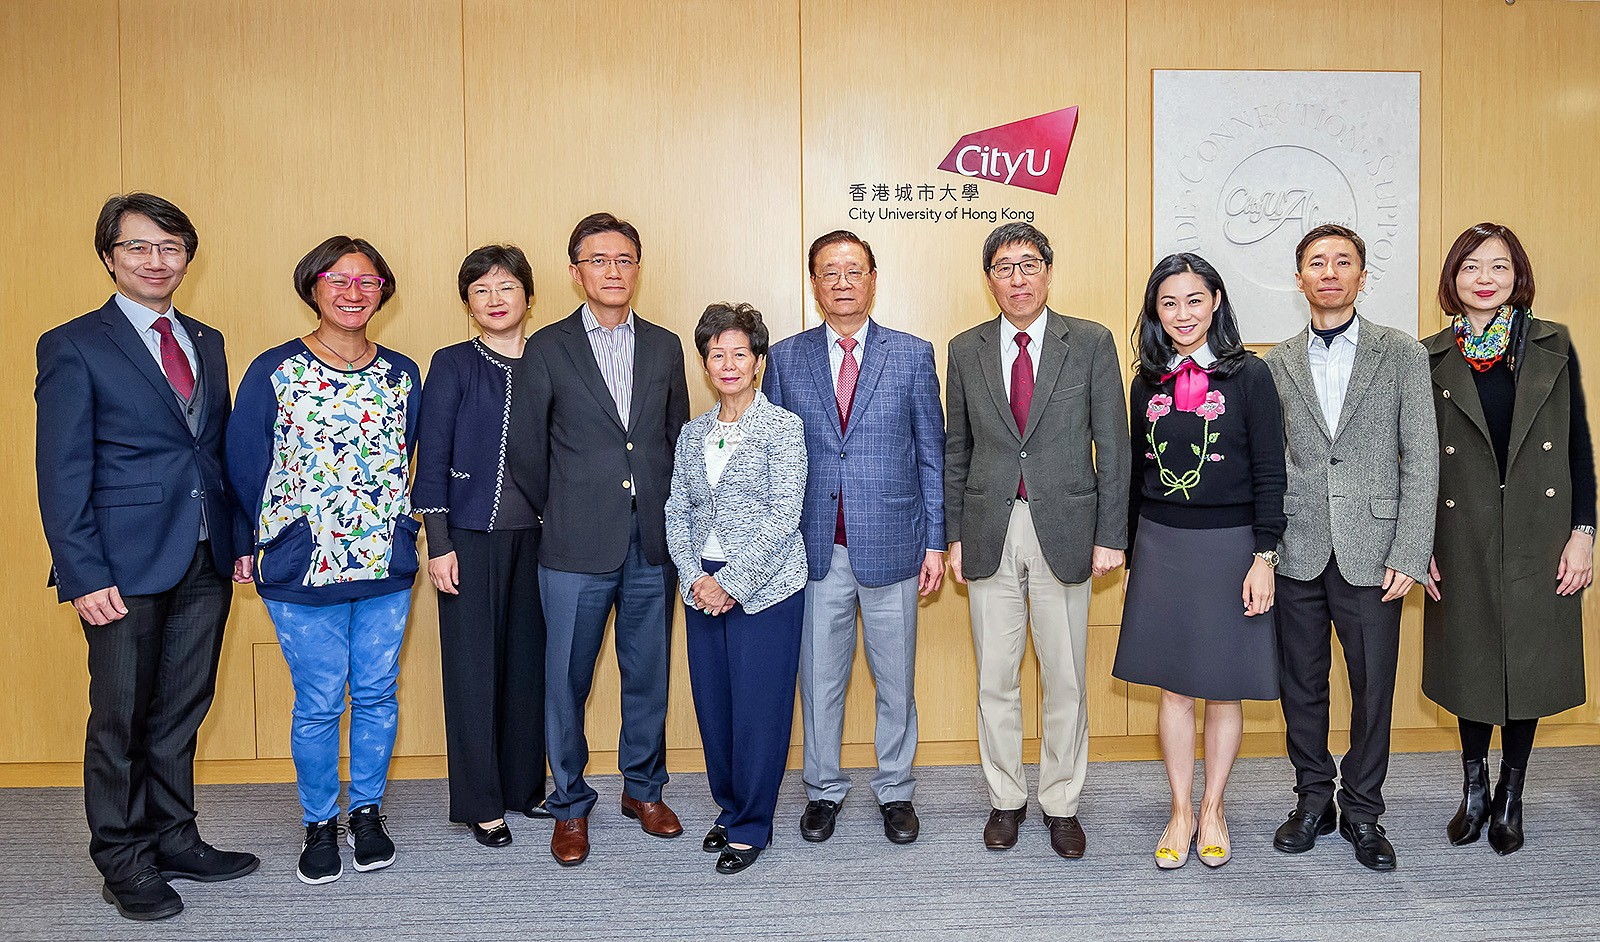 Mr and Mrs Chu, their family members and CityU senior management at the cheque presentation ceremony.